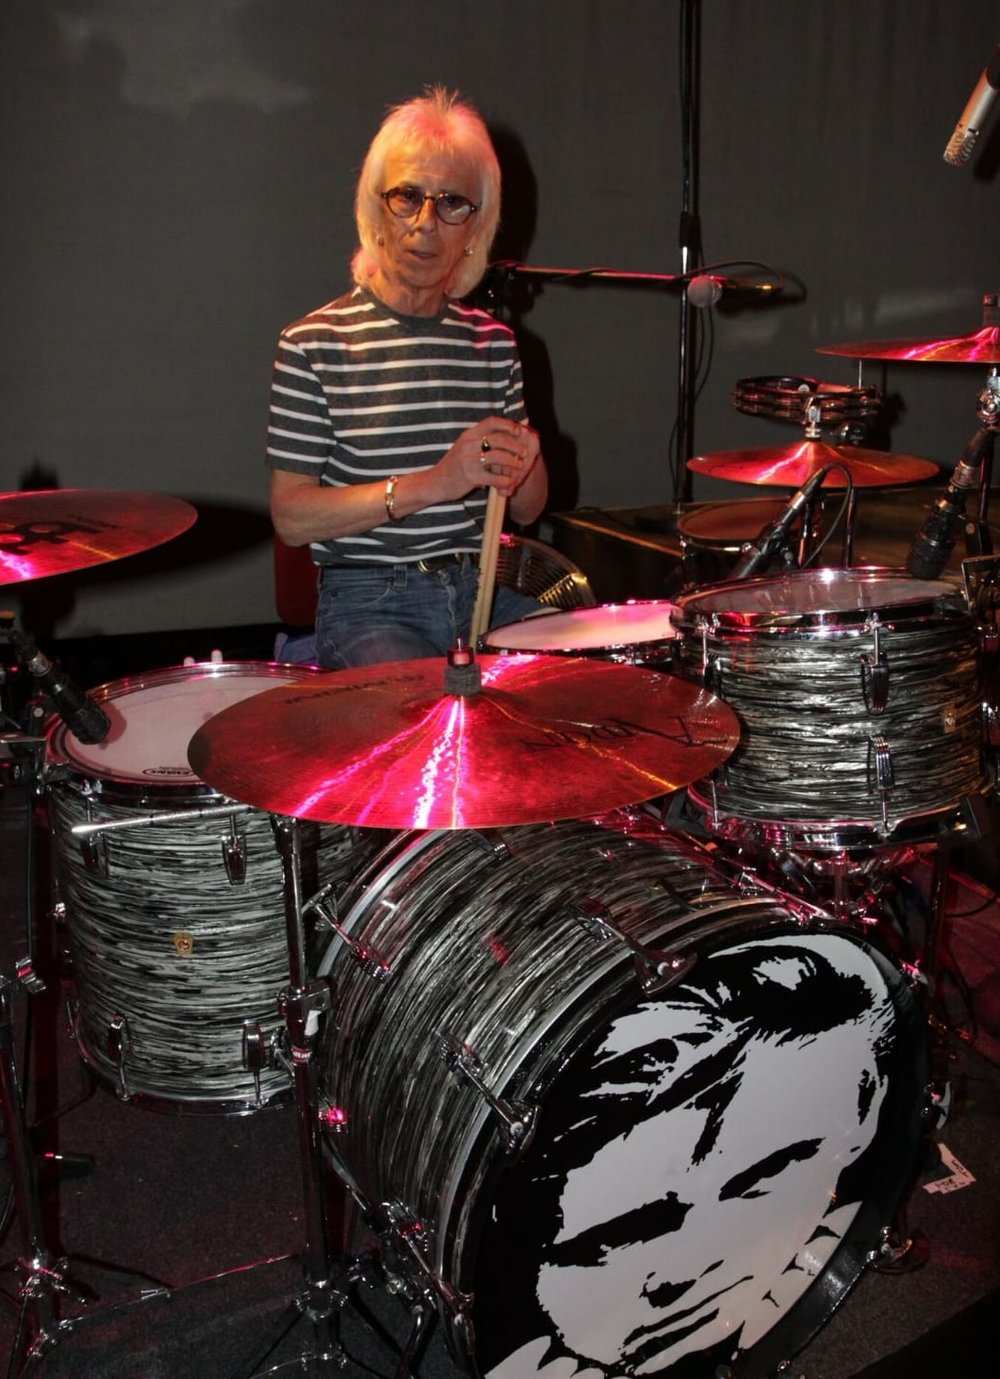 - John has quite a collection of Ludwig Drum Kits.Here he is sat at his favoured 1964 Ludwig Black Oyster Super Classic.